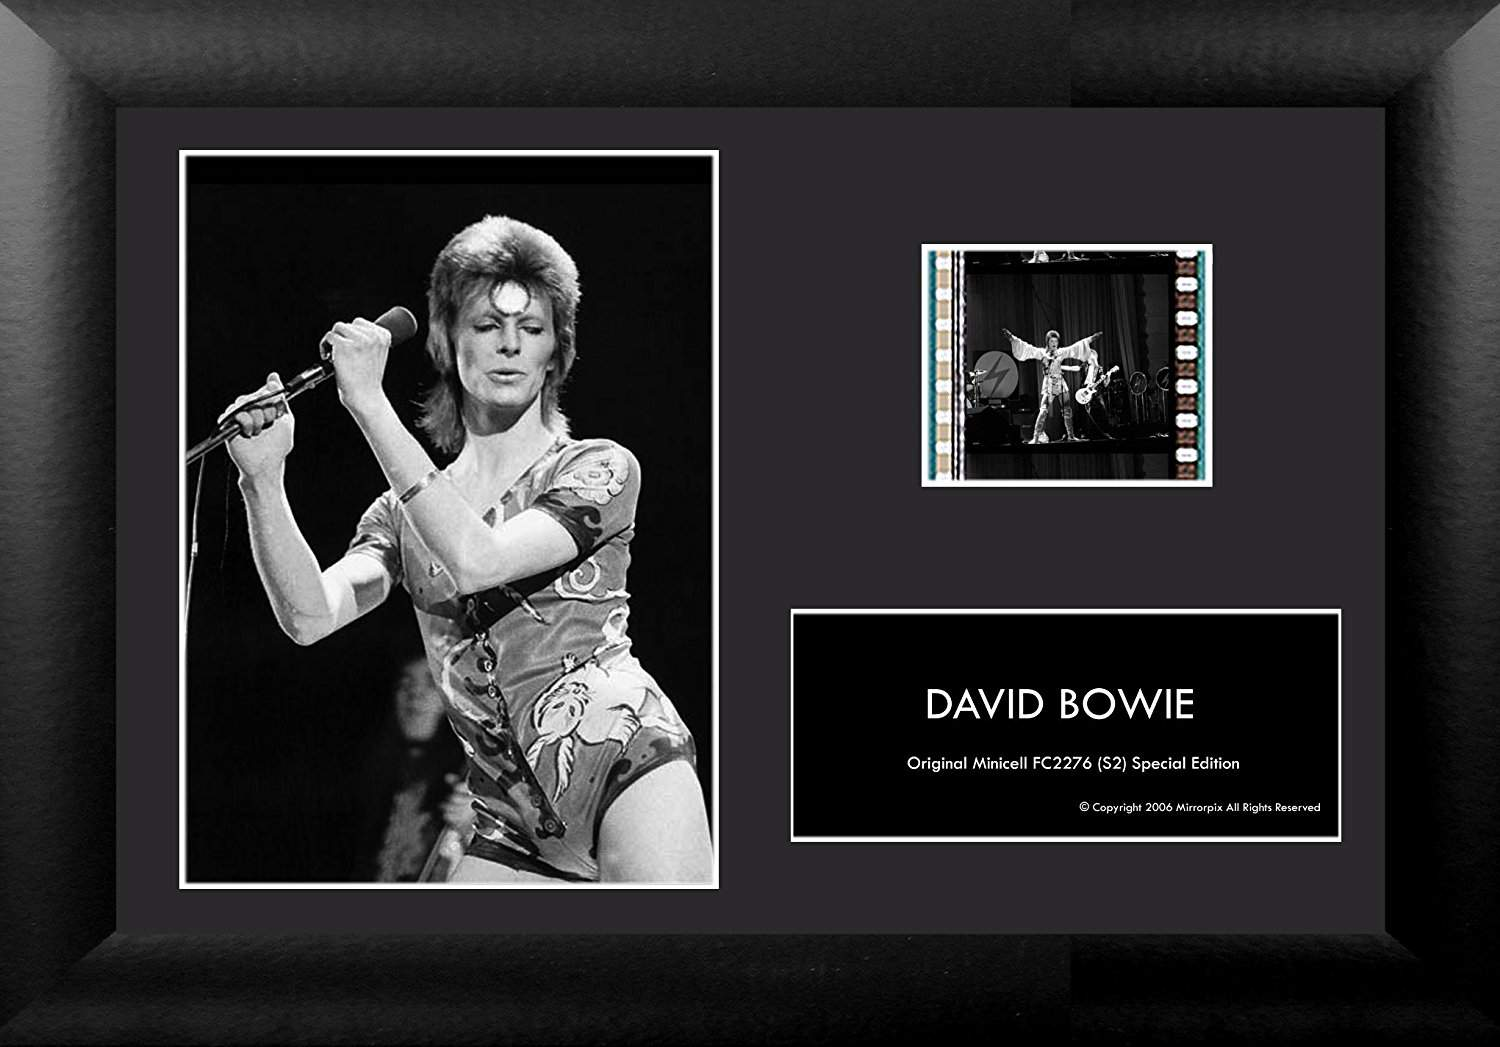 David Bowie 35mm Film Cell Minicell